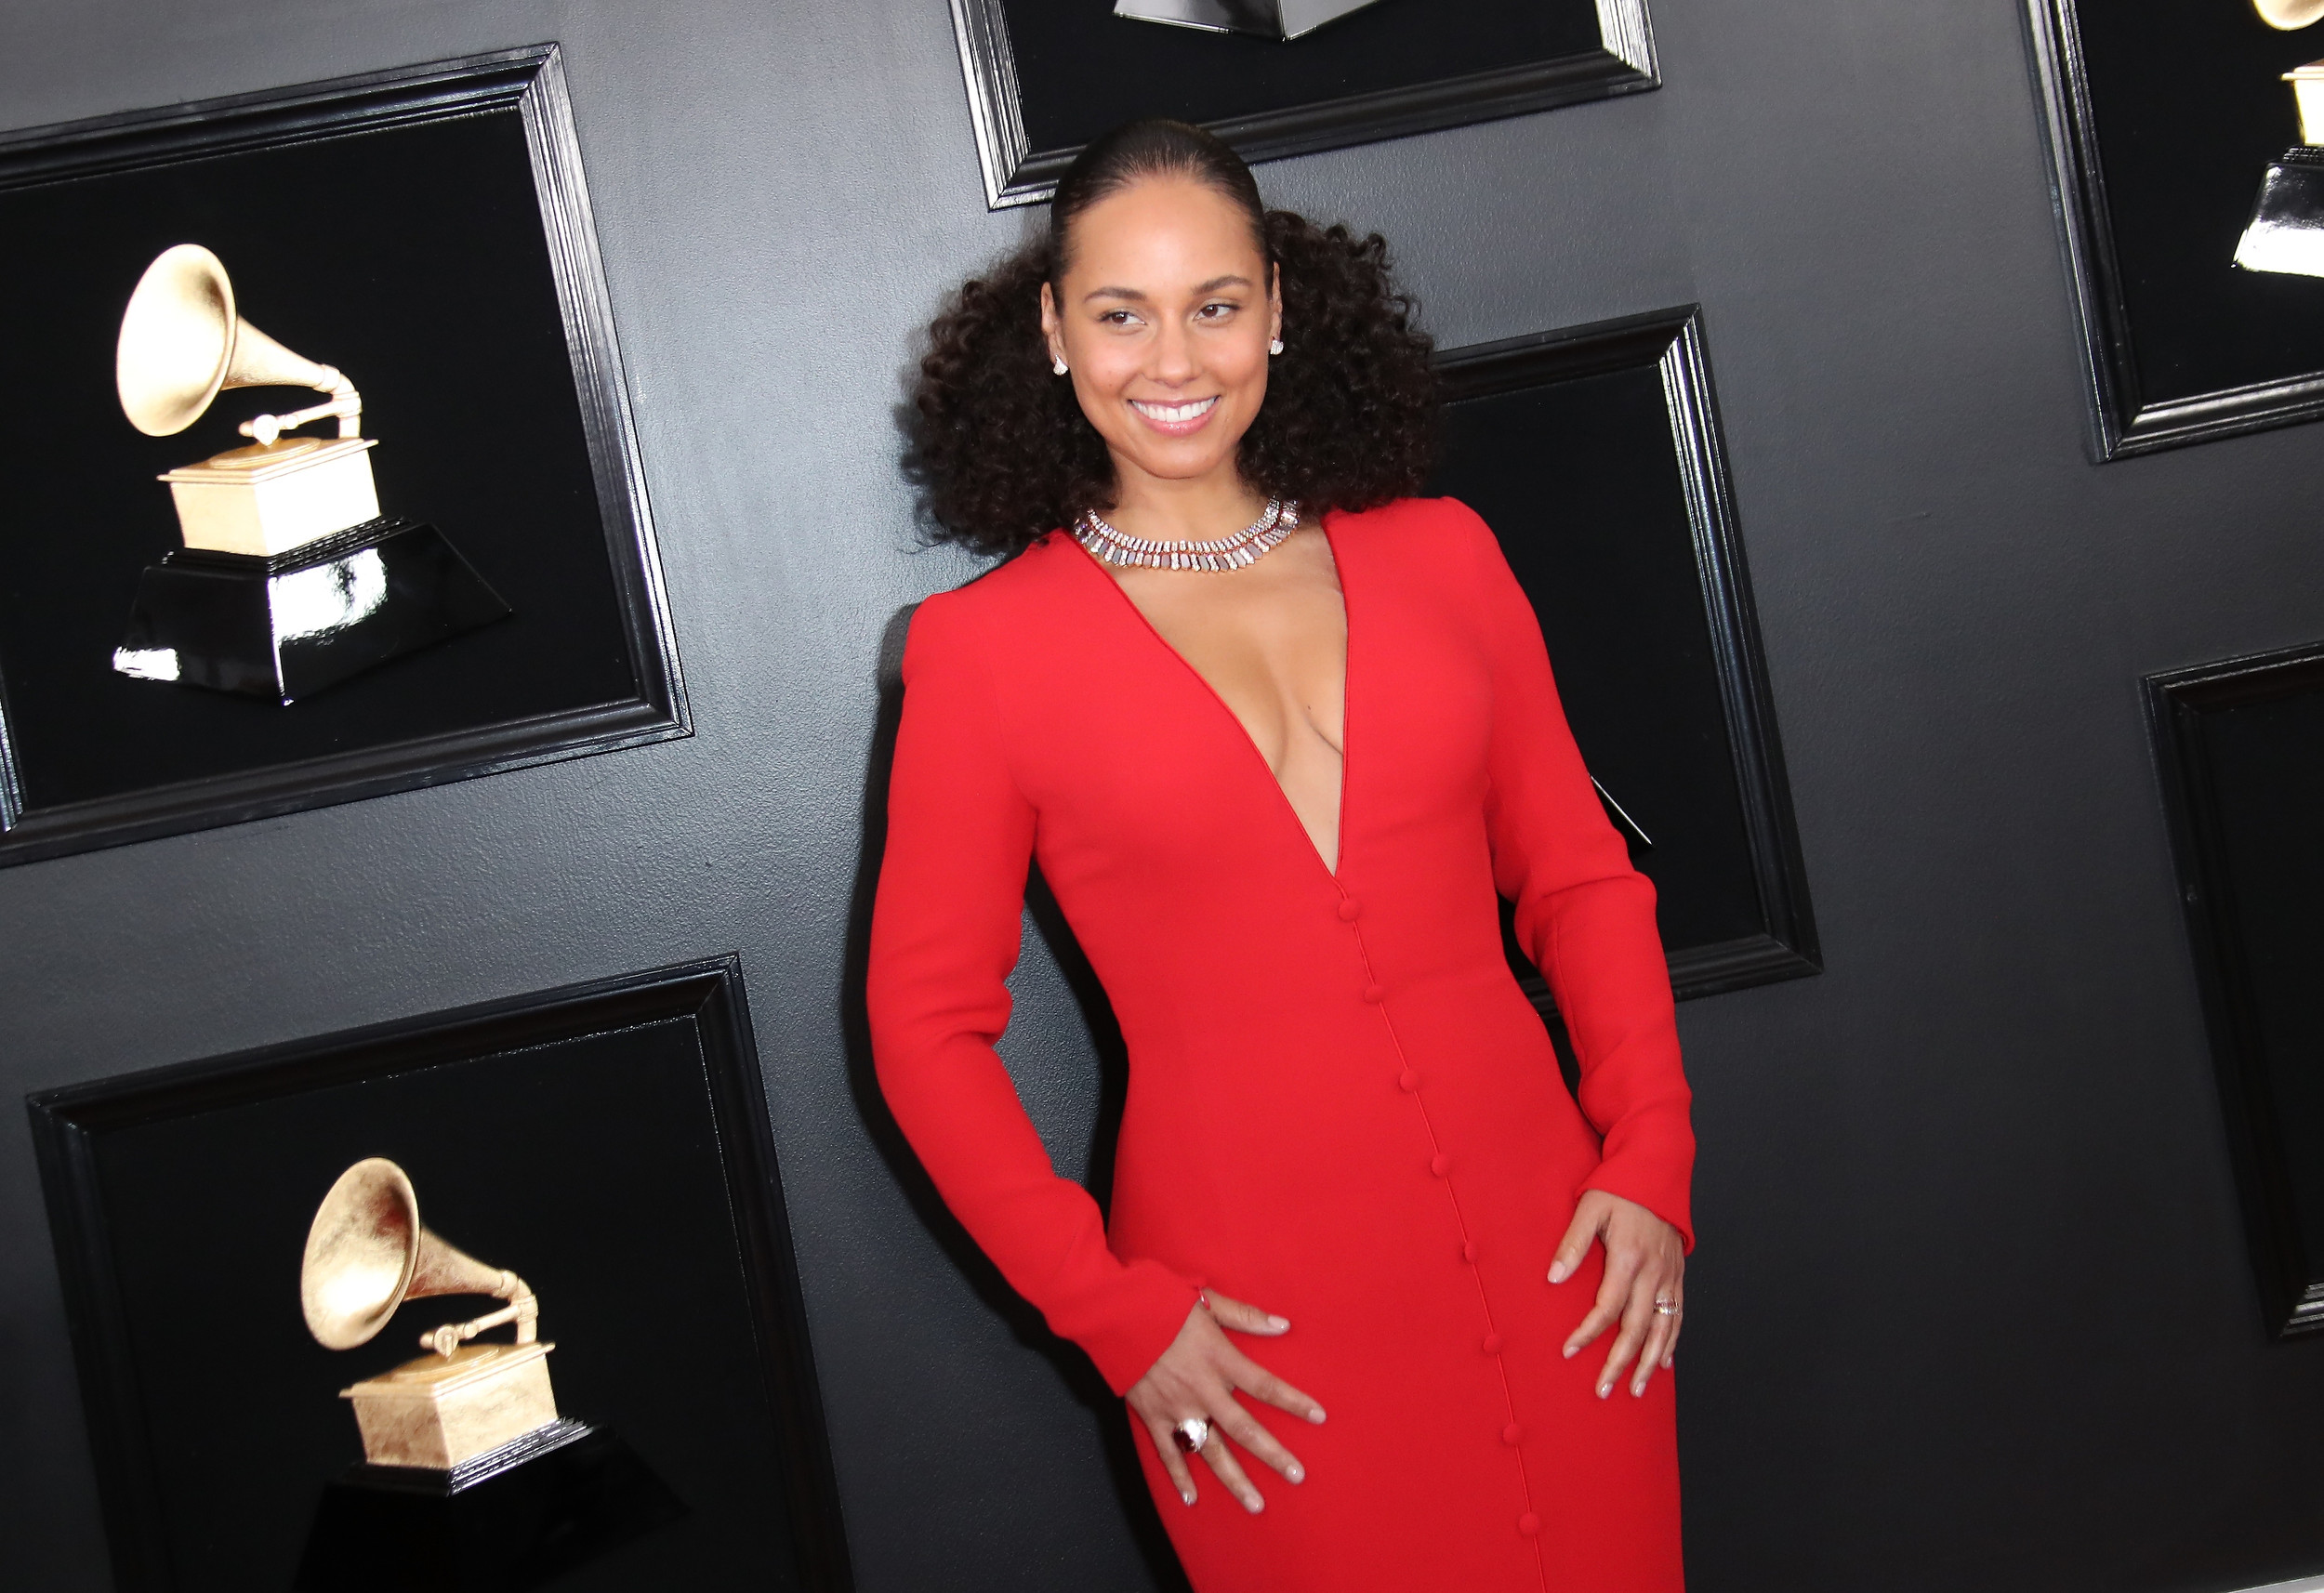 LOS ANGELES, CA - FEBRUARY 10: Alicia Keys attends the 61st Annual GRAMMY Awards at Staples Center on February 10, 2019 in Los Angeles, California. (Photo by Dan MacMedan/Getty Images)